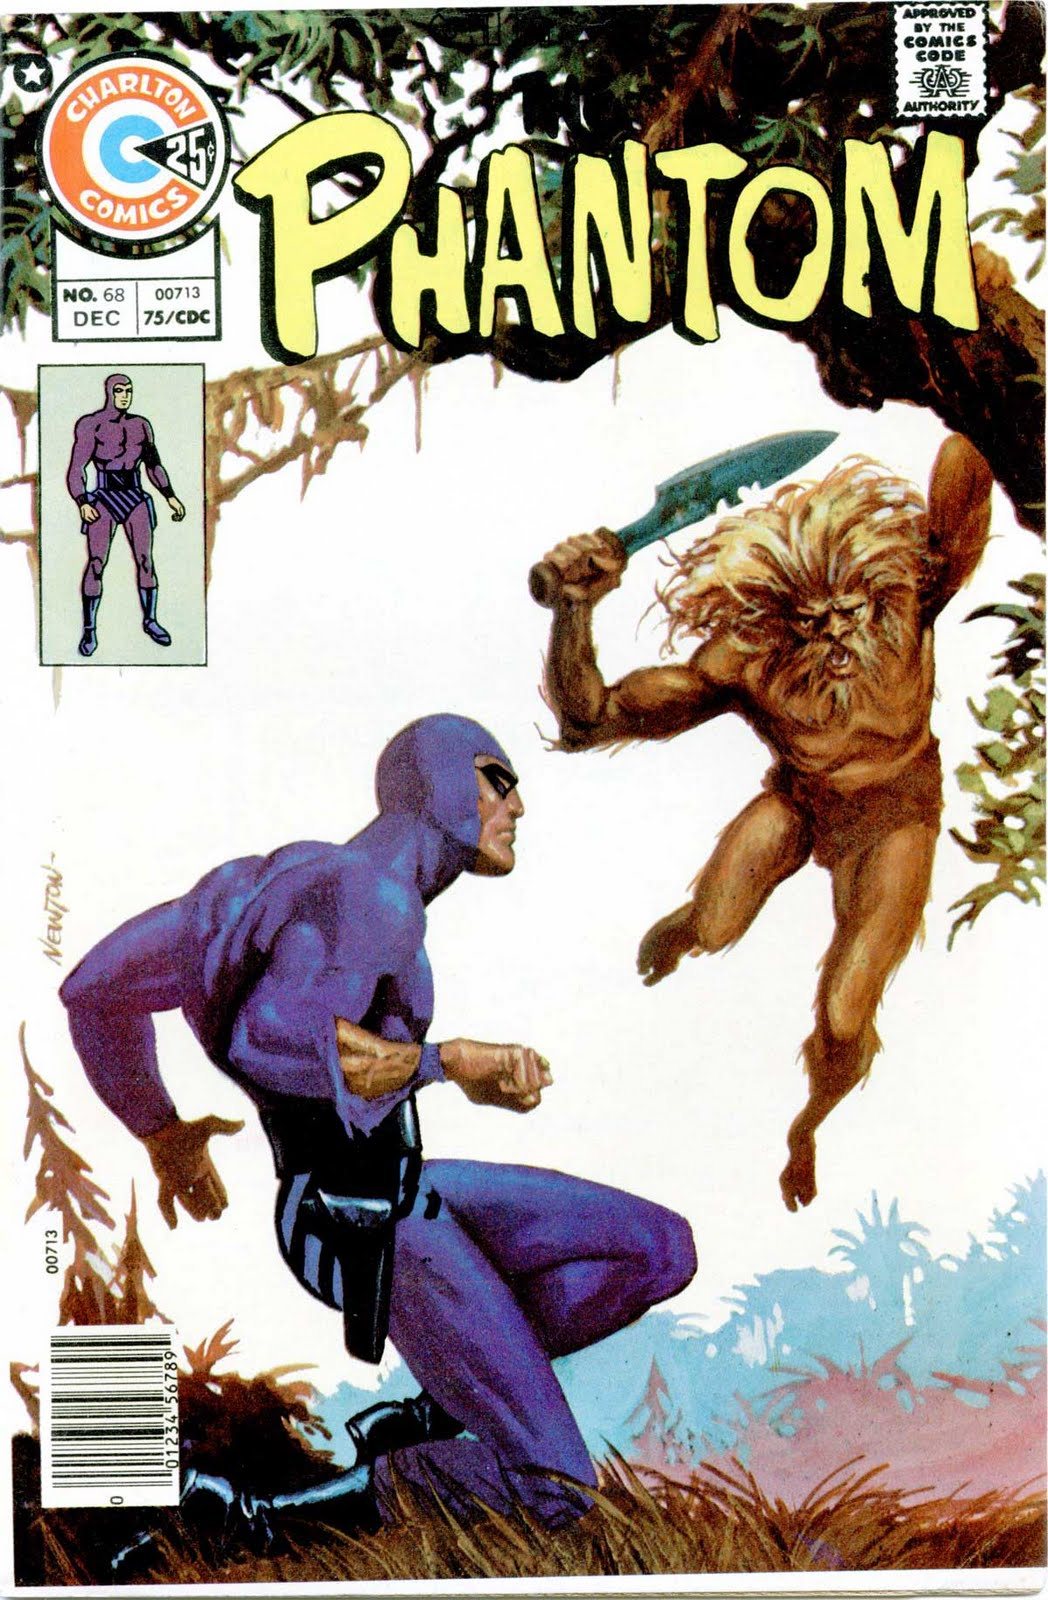 The Phantom v2 #68 charlton comic book cover art by Don Newton